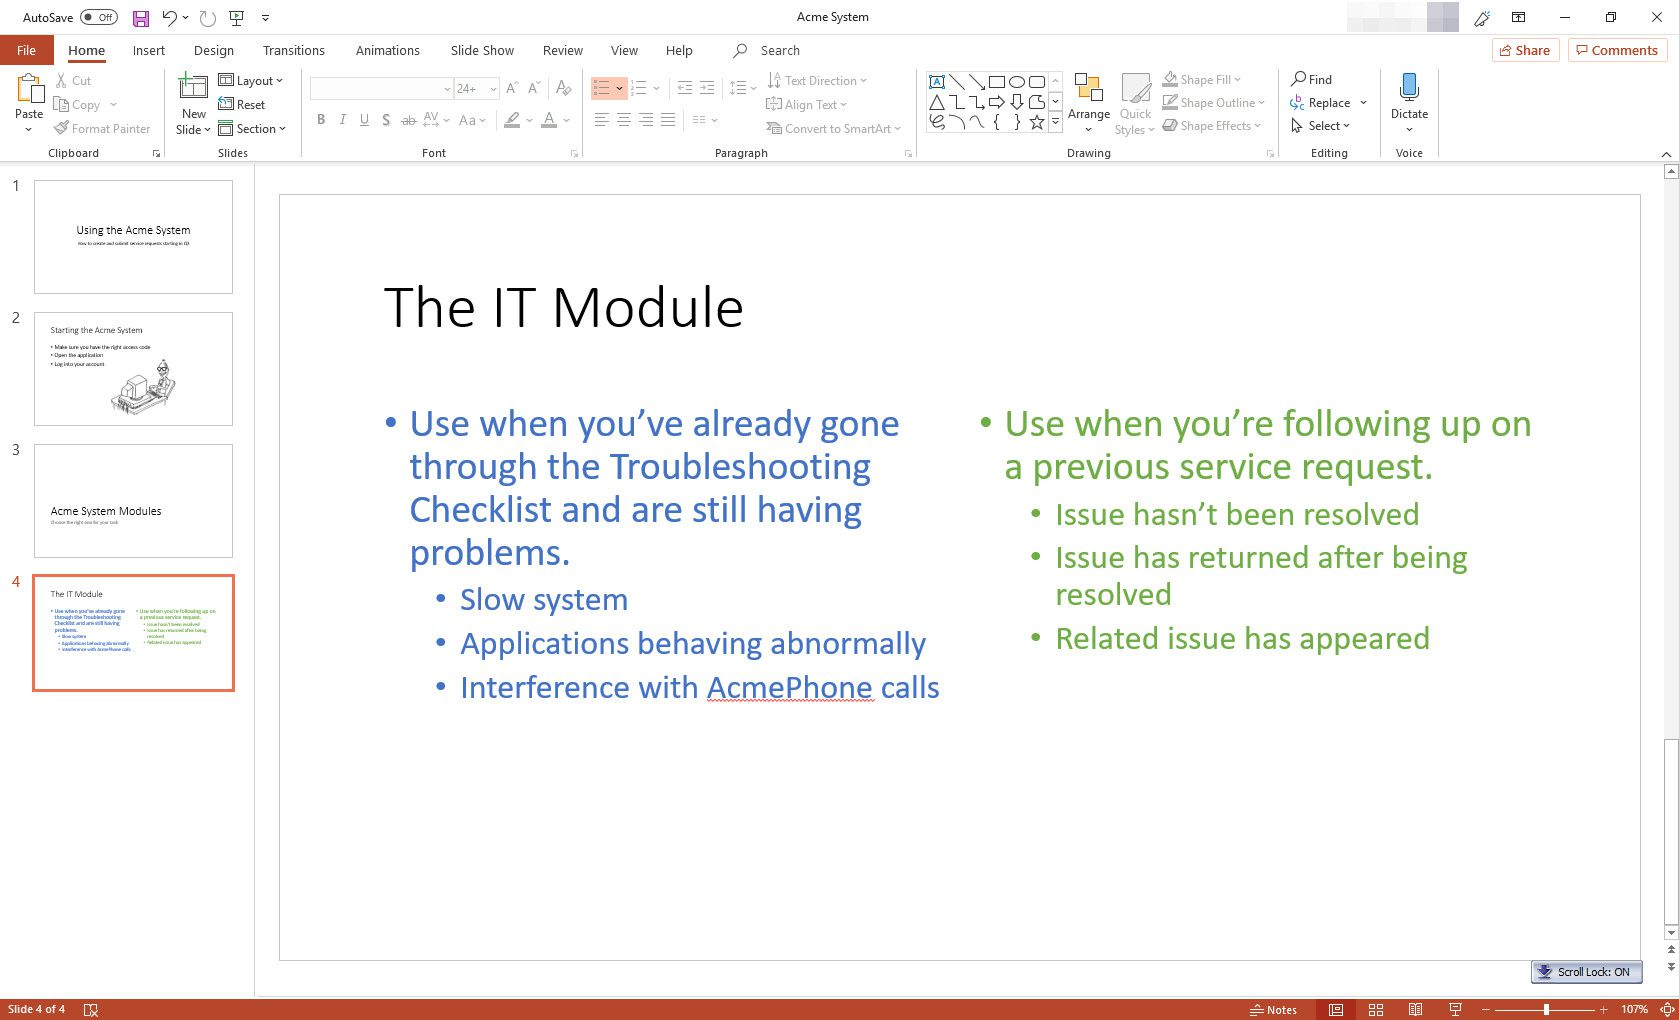 MS PowerPoint with Two Content slide layout displayed